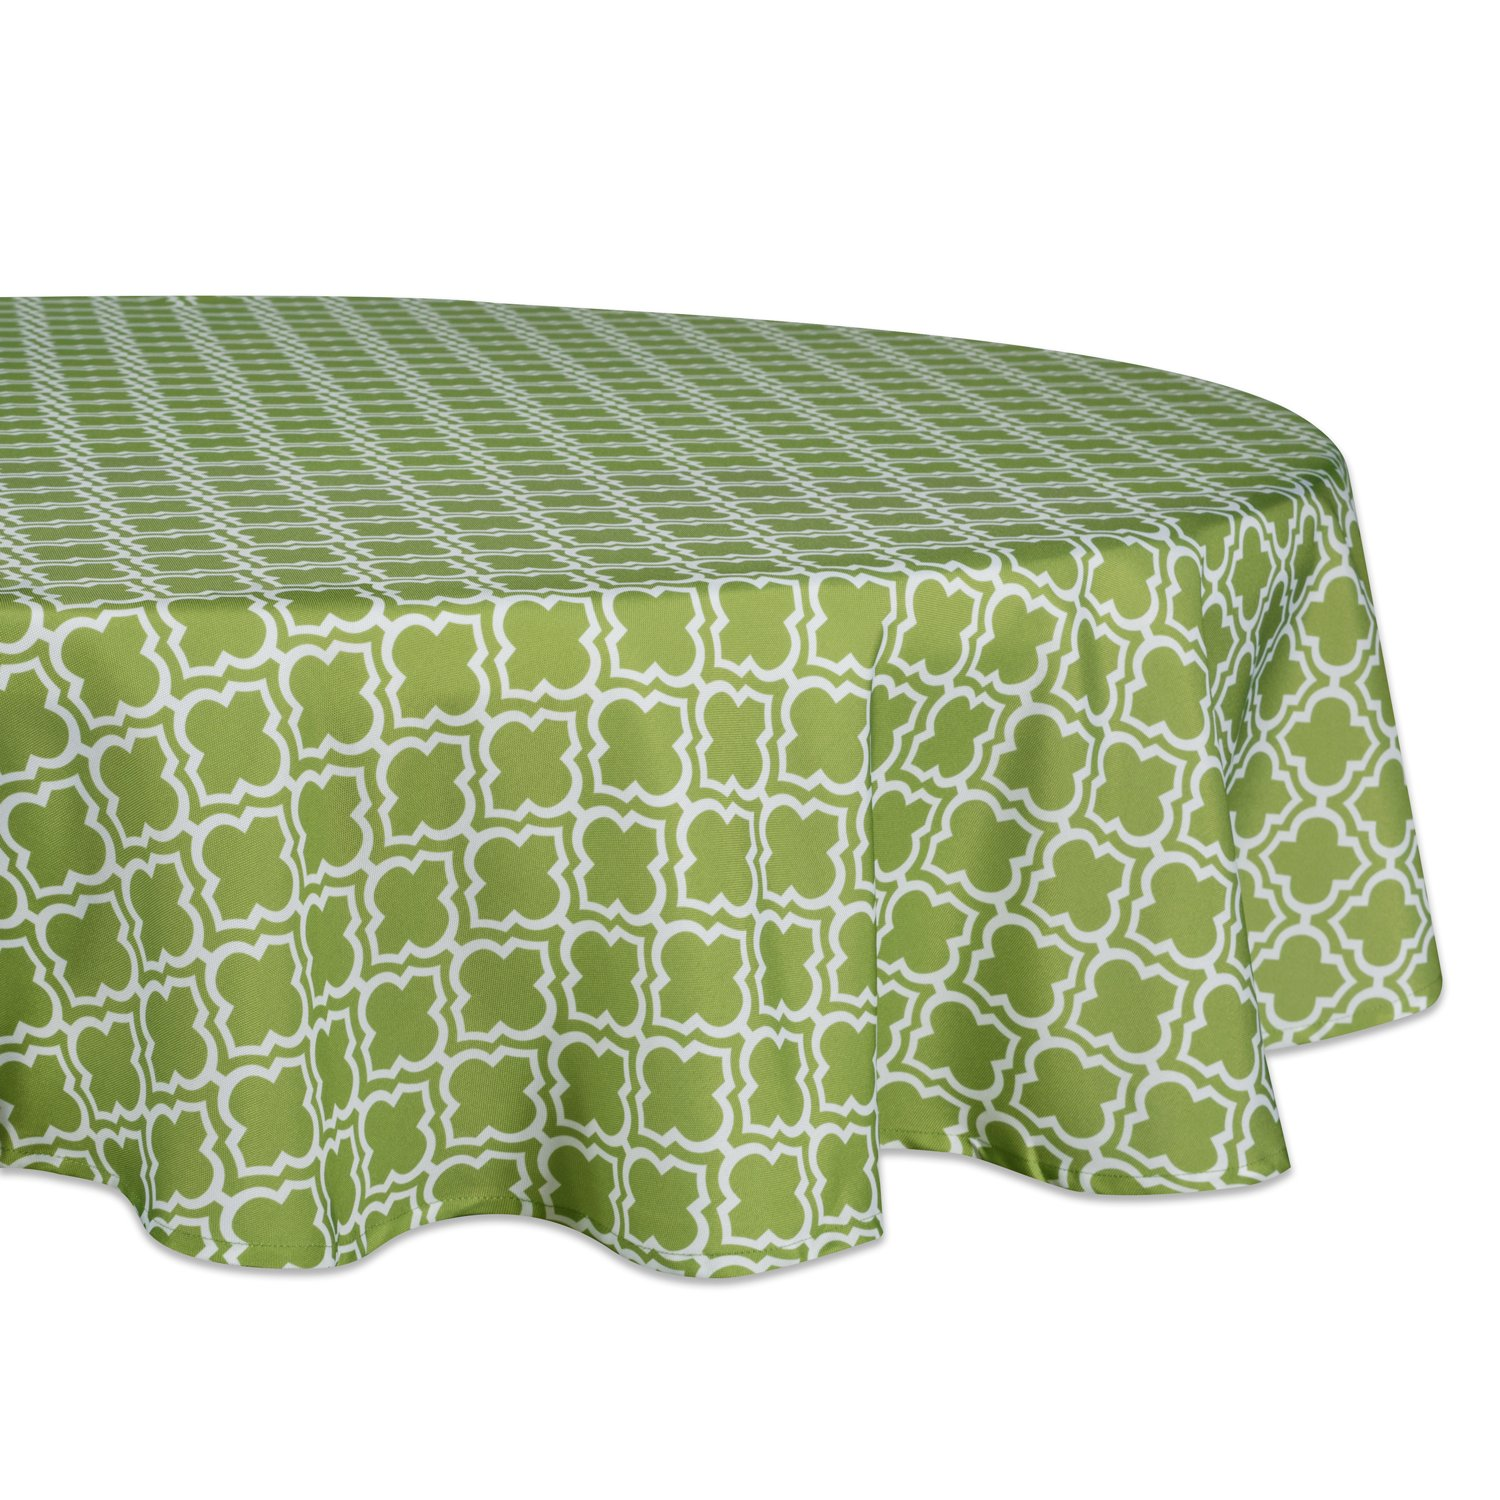 """DII 100% Polyester, Spill Proof, Machine Washable, Tablecloth for Outdoor Use, 60"""" Round, Fresh Spring Lattice, Seats 4 People, Green"""